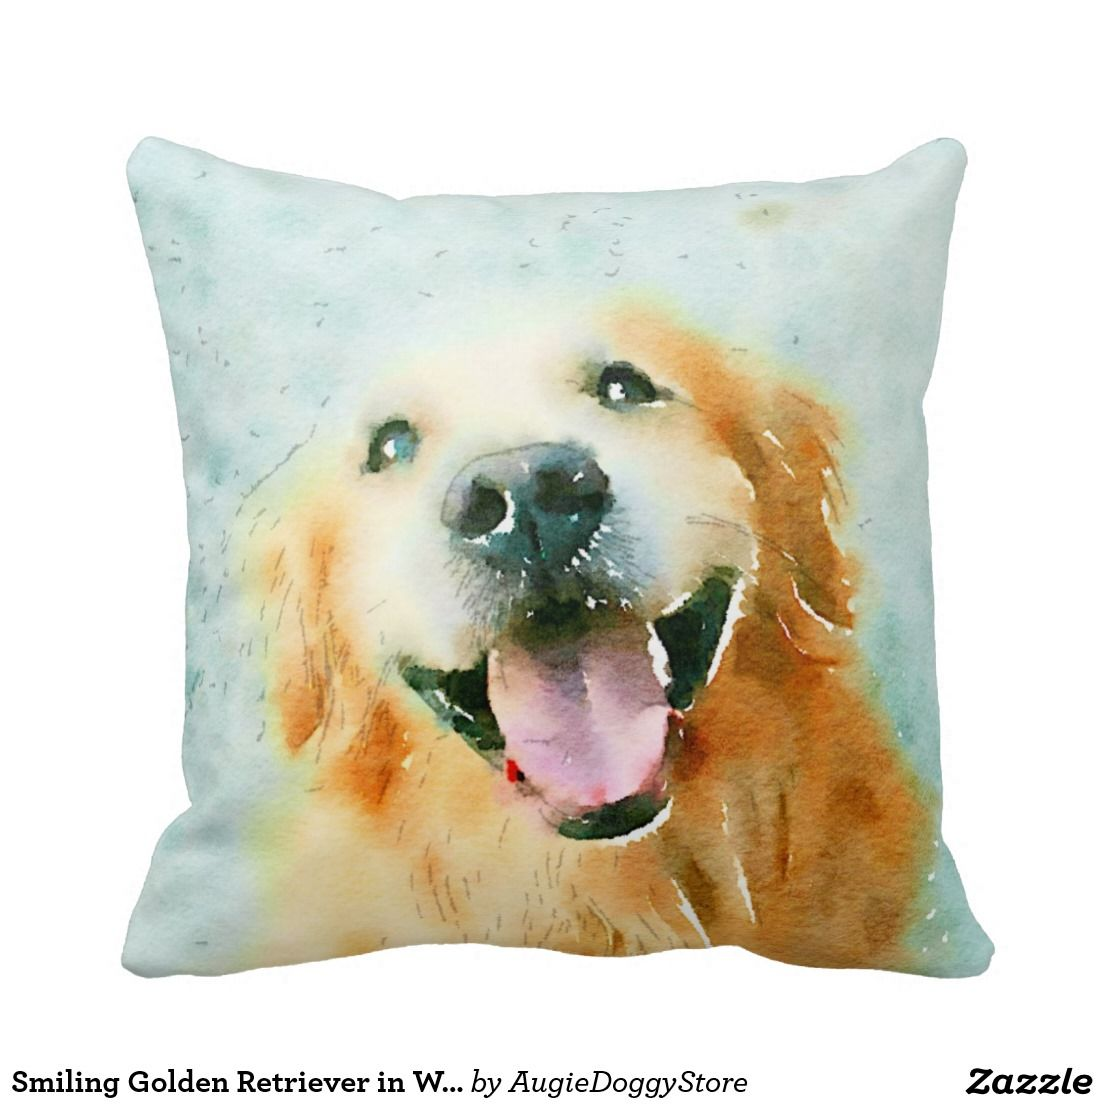 Smiling Golden Retriever in Watercolor Throw Pillow by #AugieDoggyStore